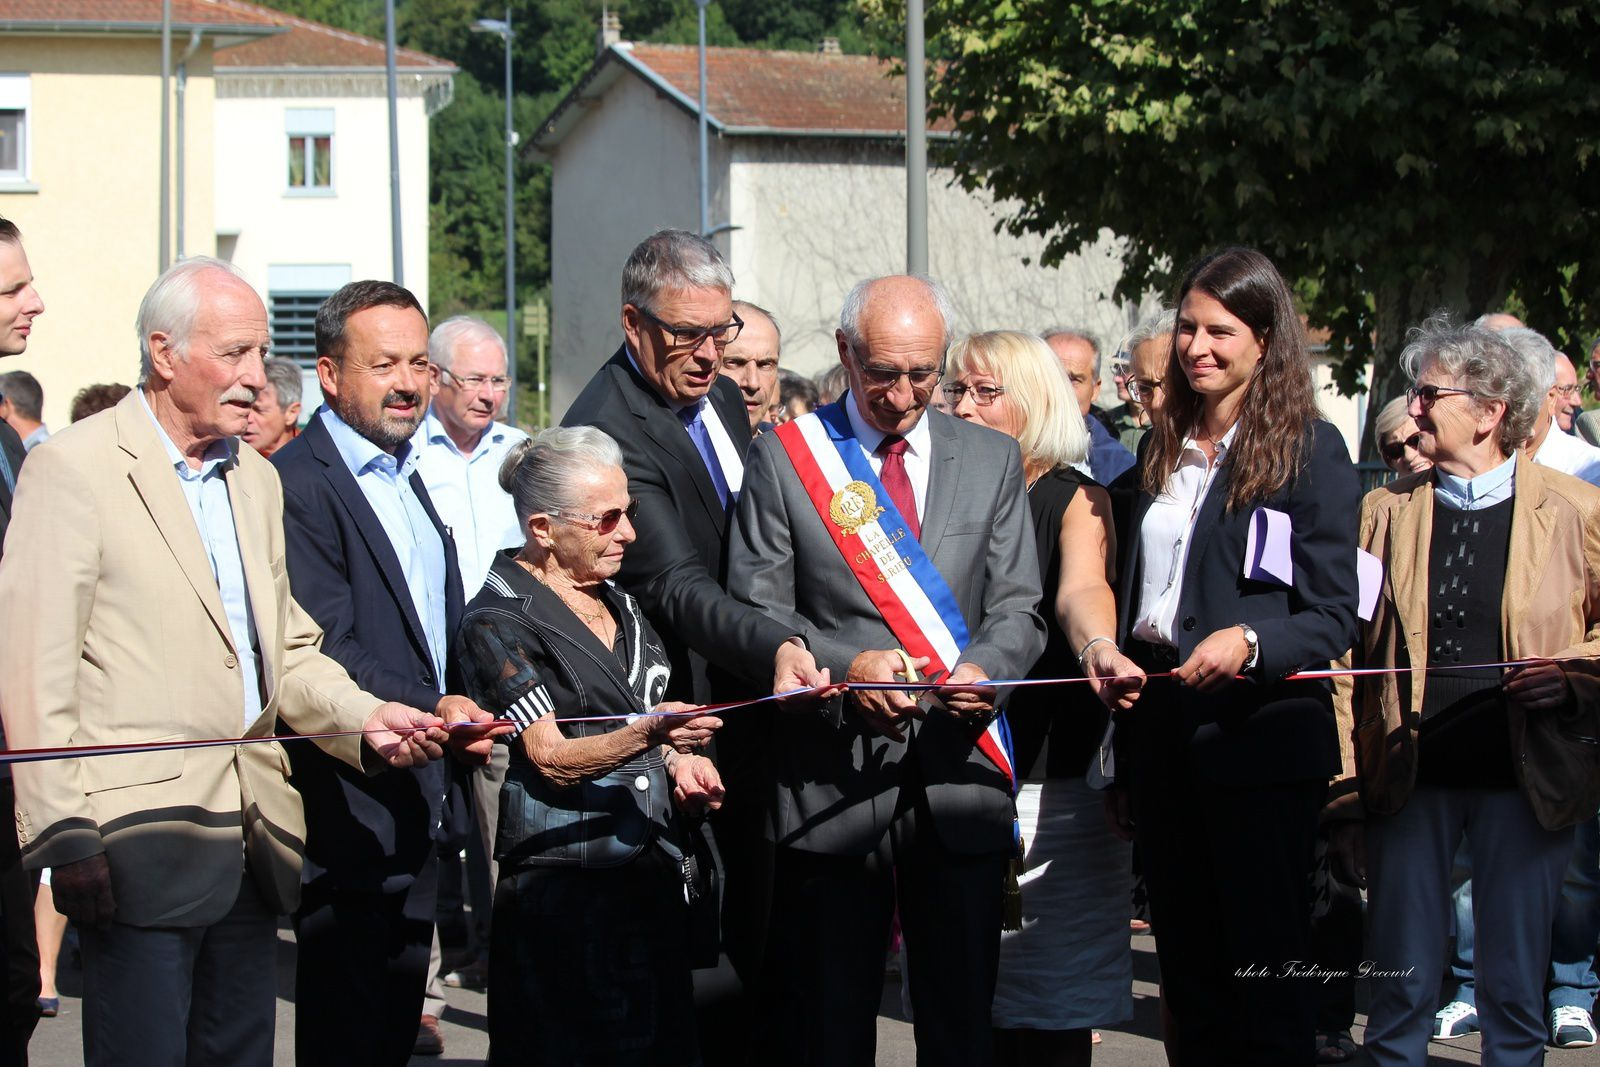 Une belle inauguration